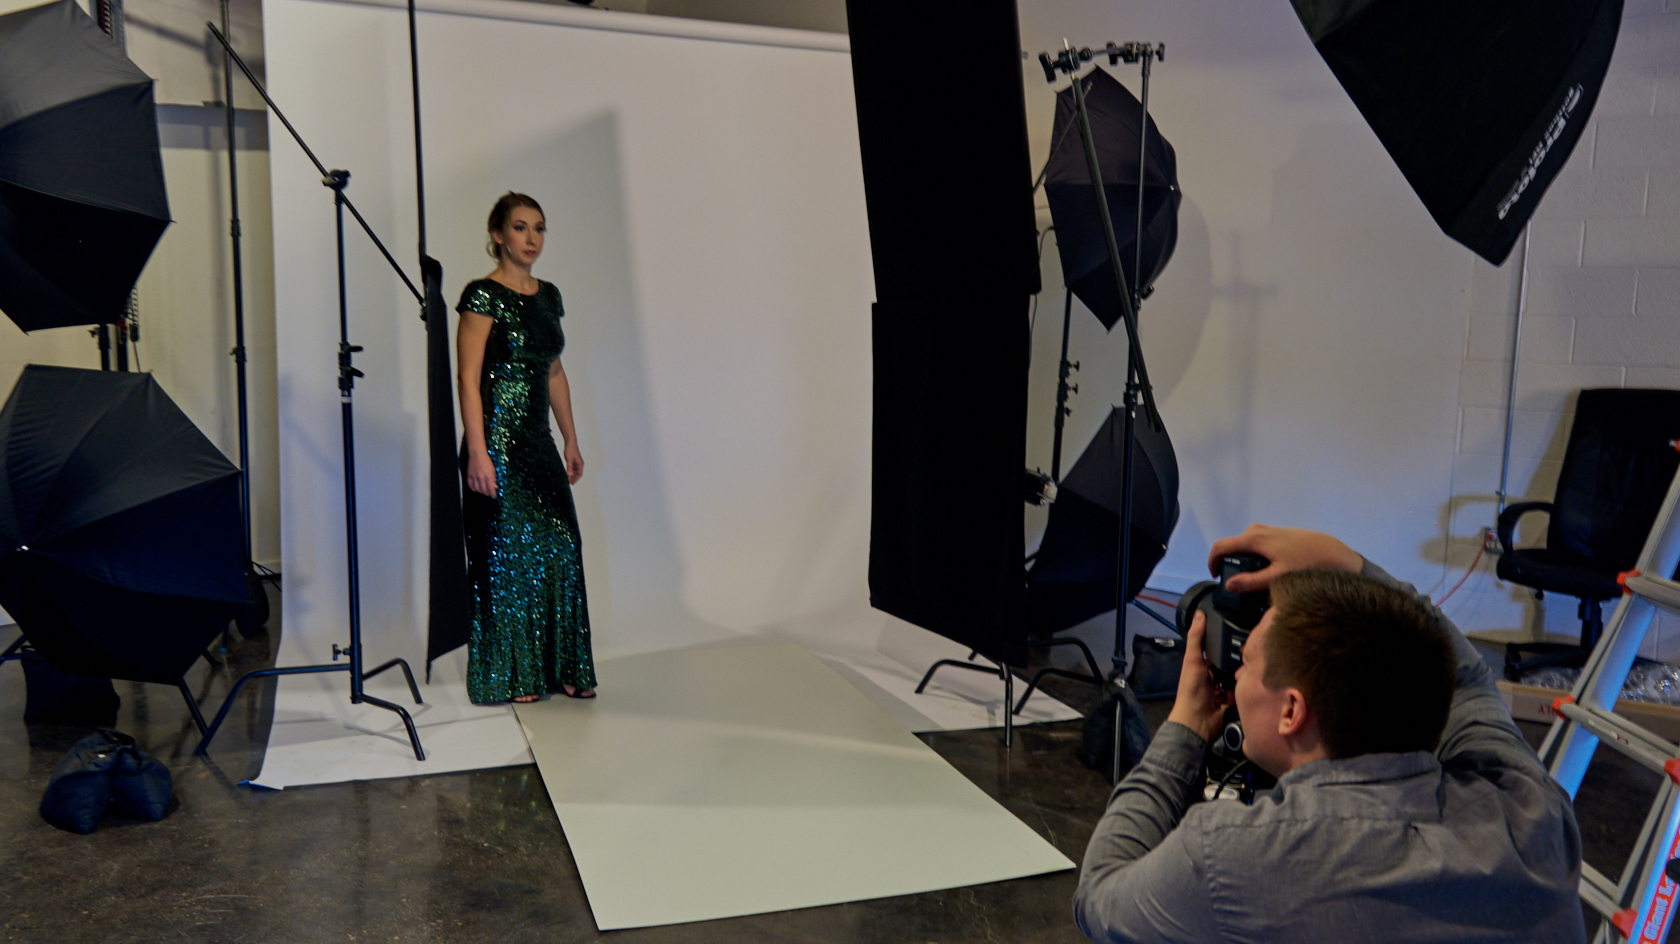 We used about 8 different lights, with soft boxes of varying sizes, as well as umbrellas, all with a white paper backdrop.